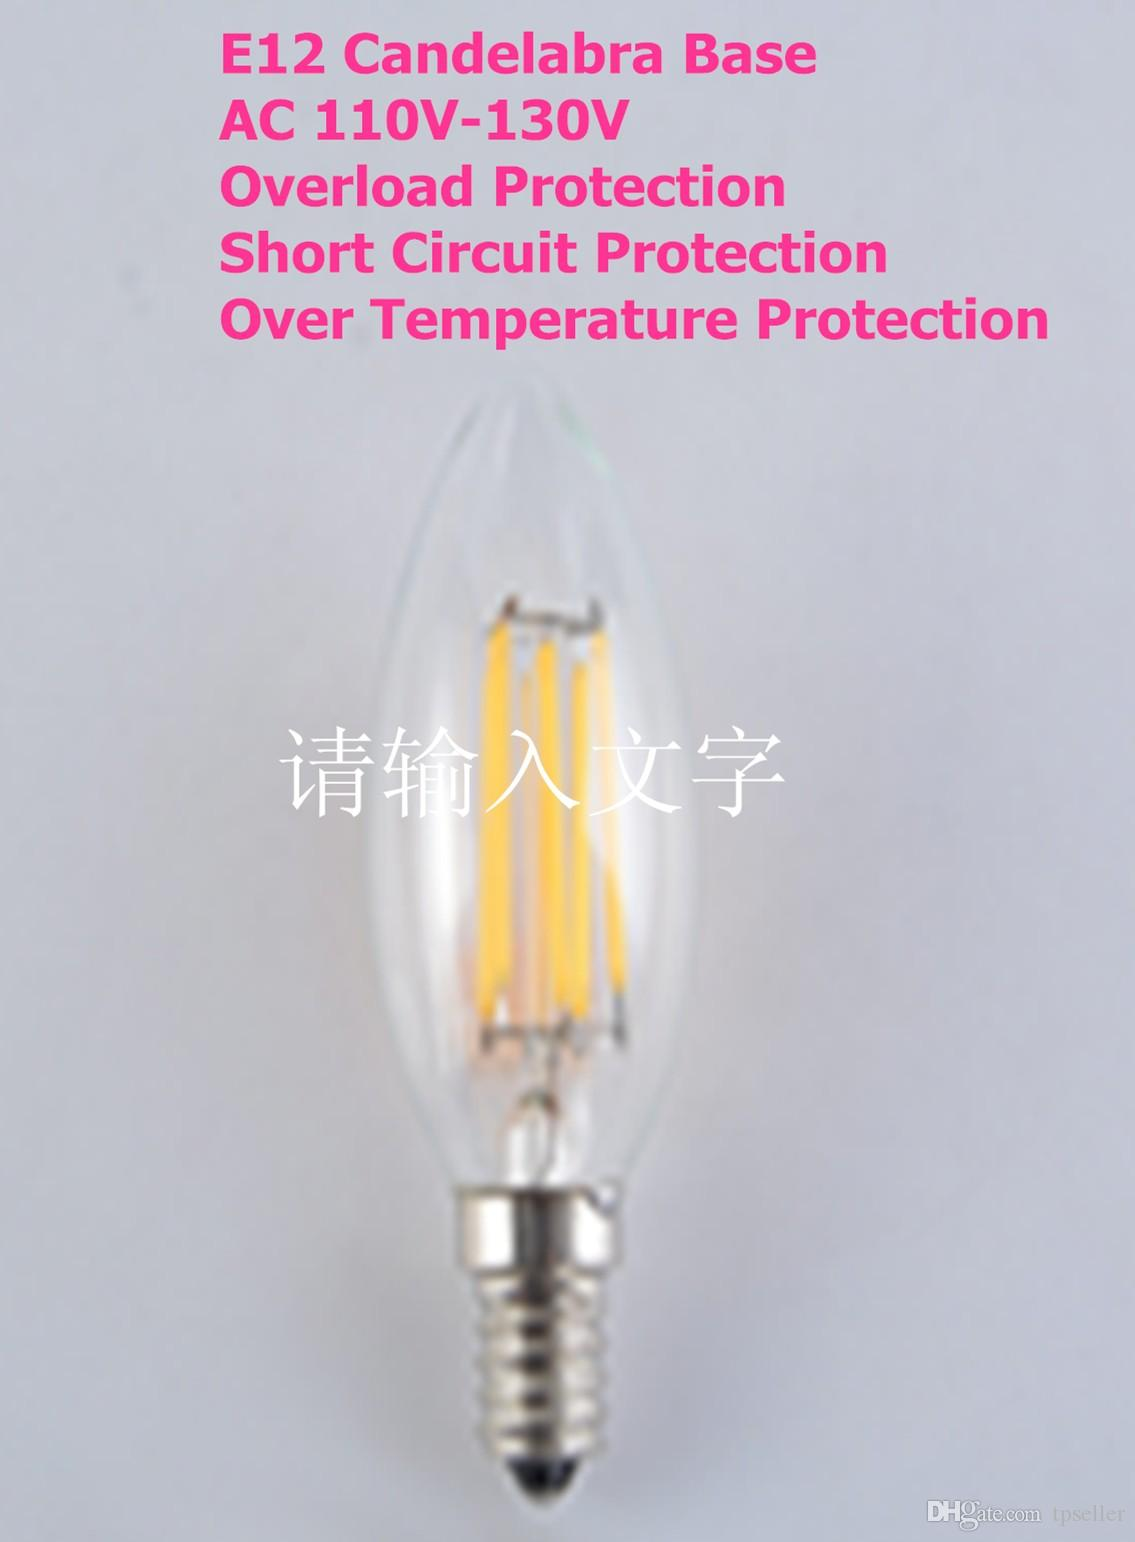 6w Dimmable Led Filament Candle Light Bulb 2700k Warm White 600lm E12 Candelabra Base Lamp C35 Bullet Top 60w Incandescent Replacement Best Bulbs